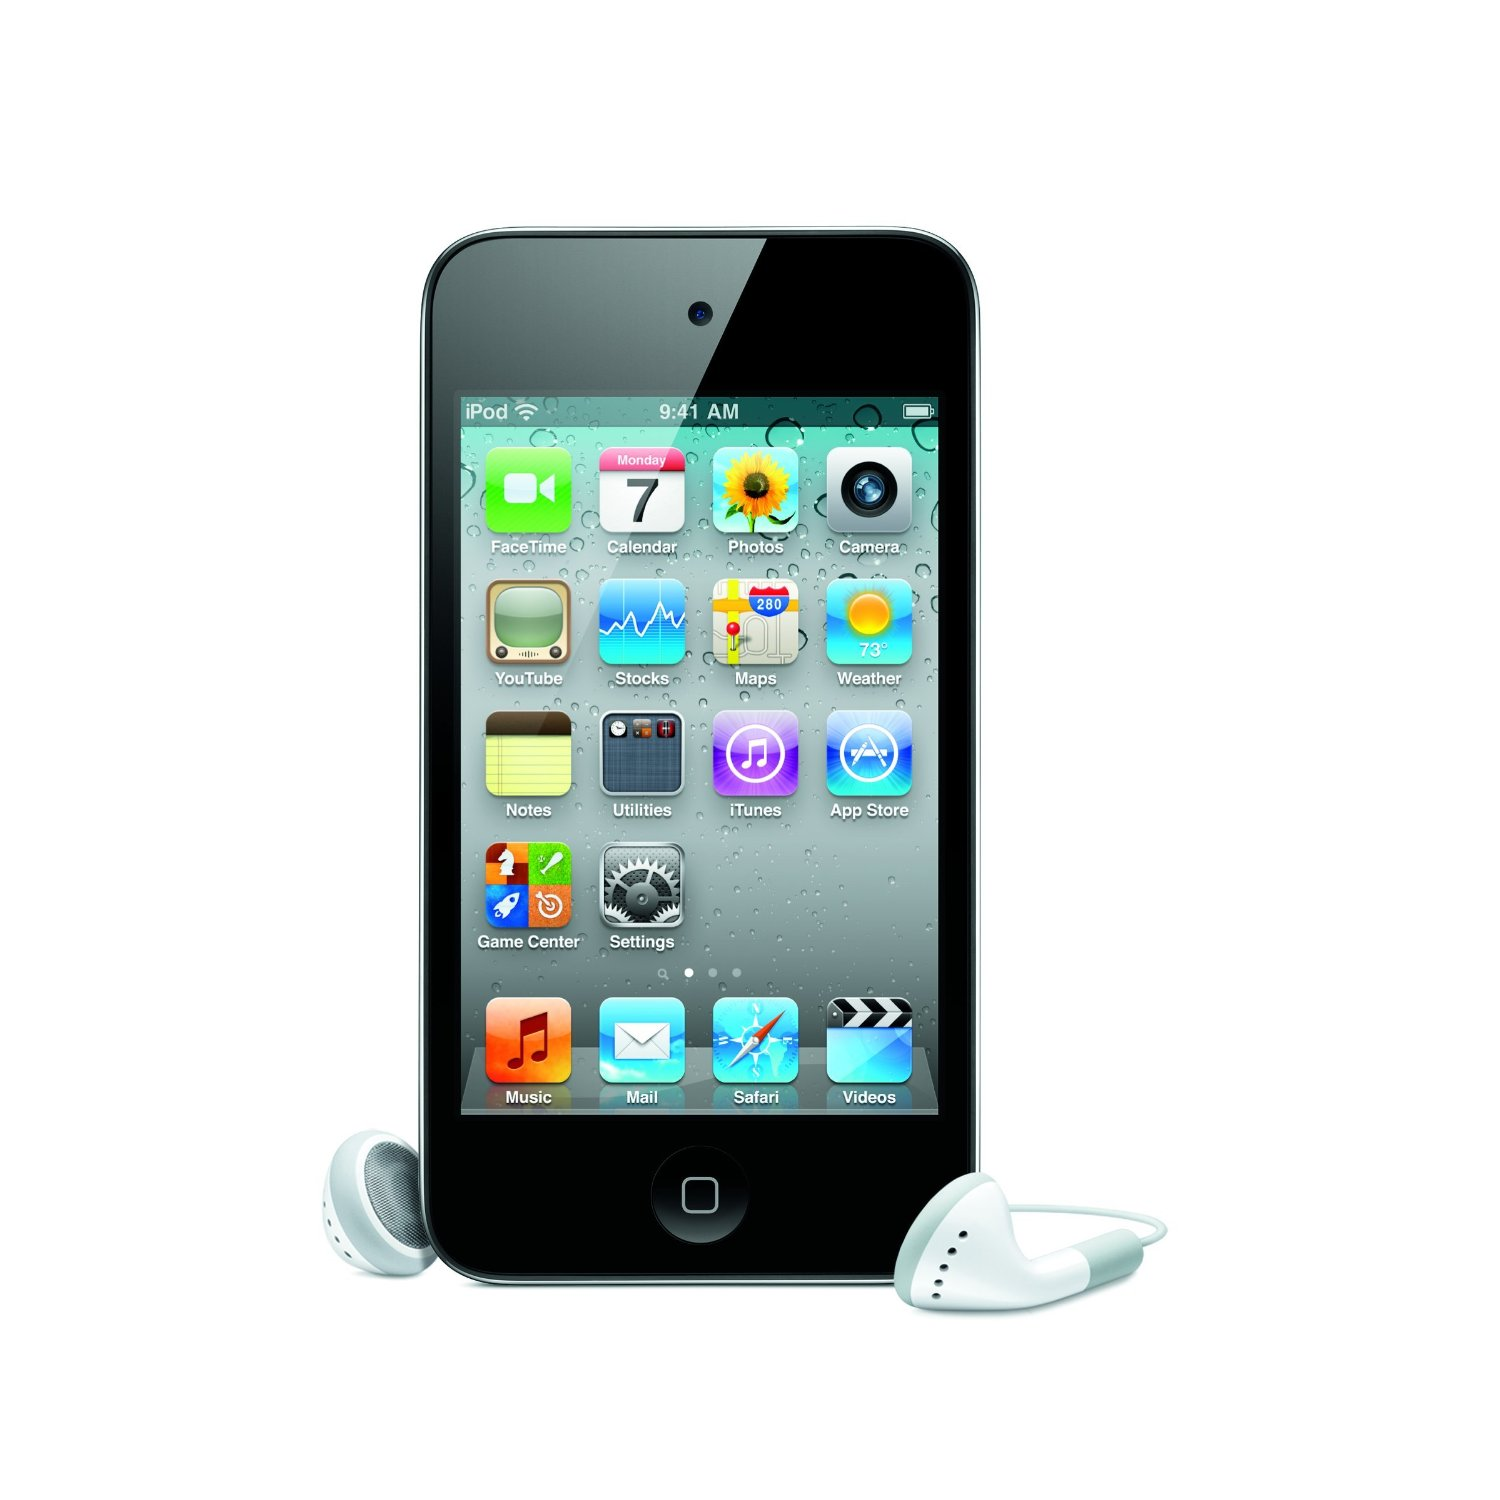 apple iphone 4 ipod touch ipad 2 cell phone mobile. Black Bedroom Furniture Sets. Home Design Ideas